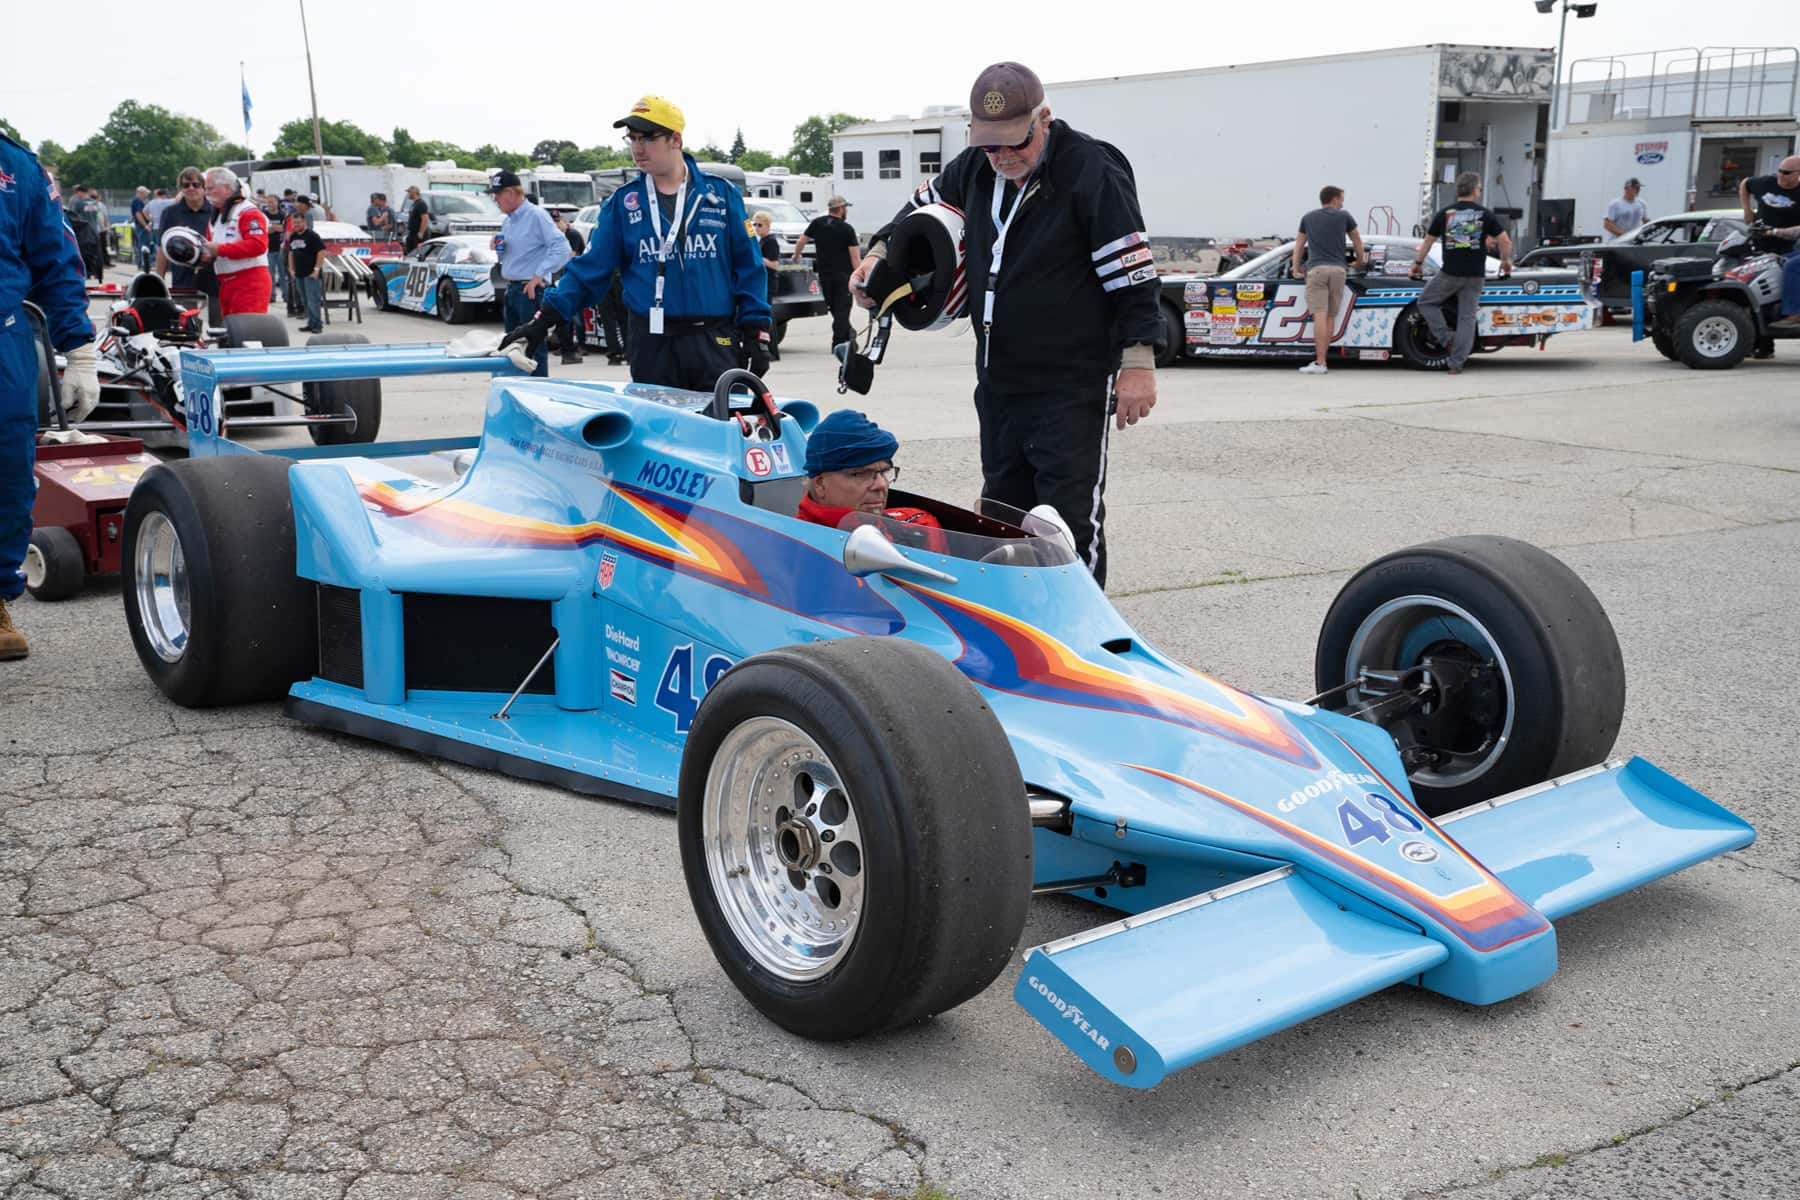 062019_milwaukeemile_205